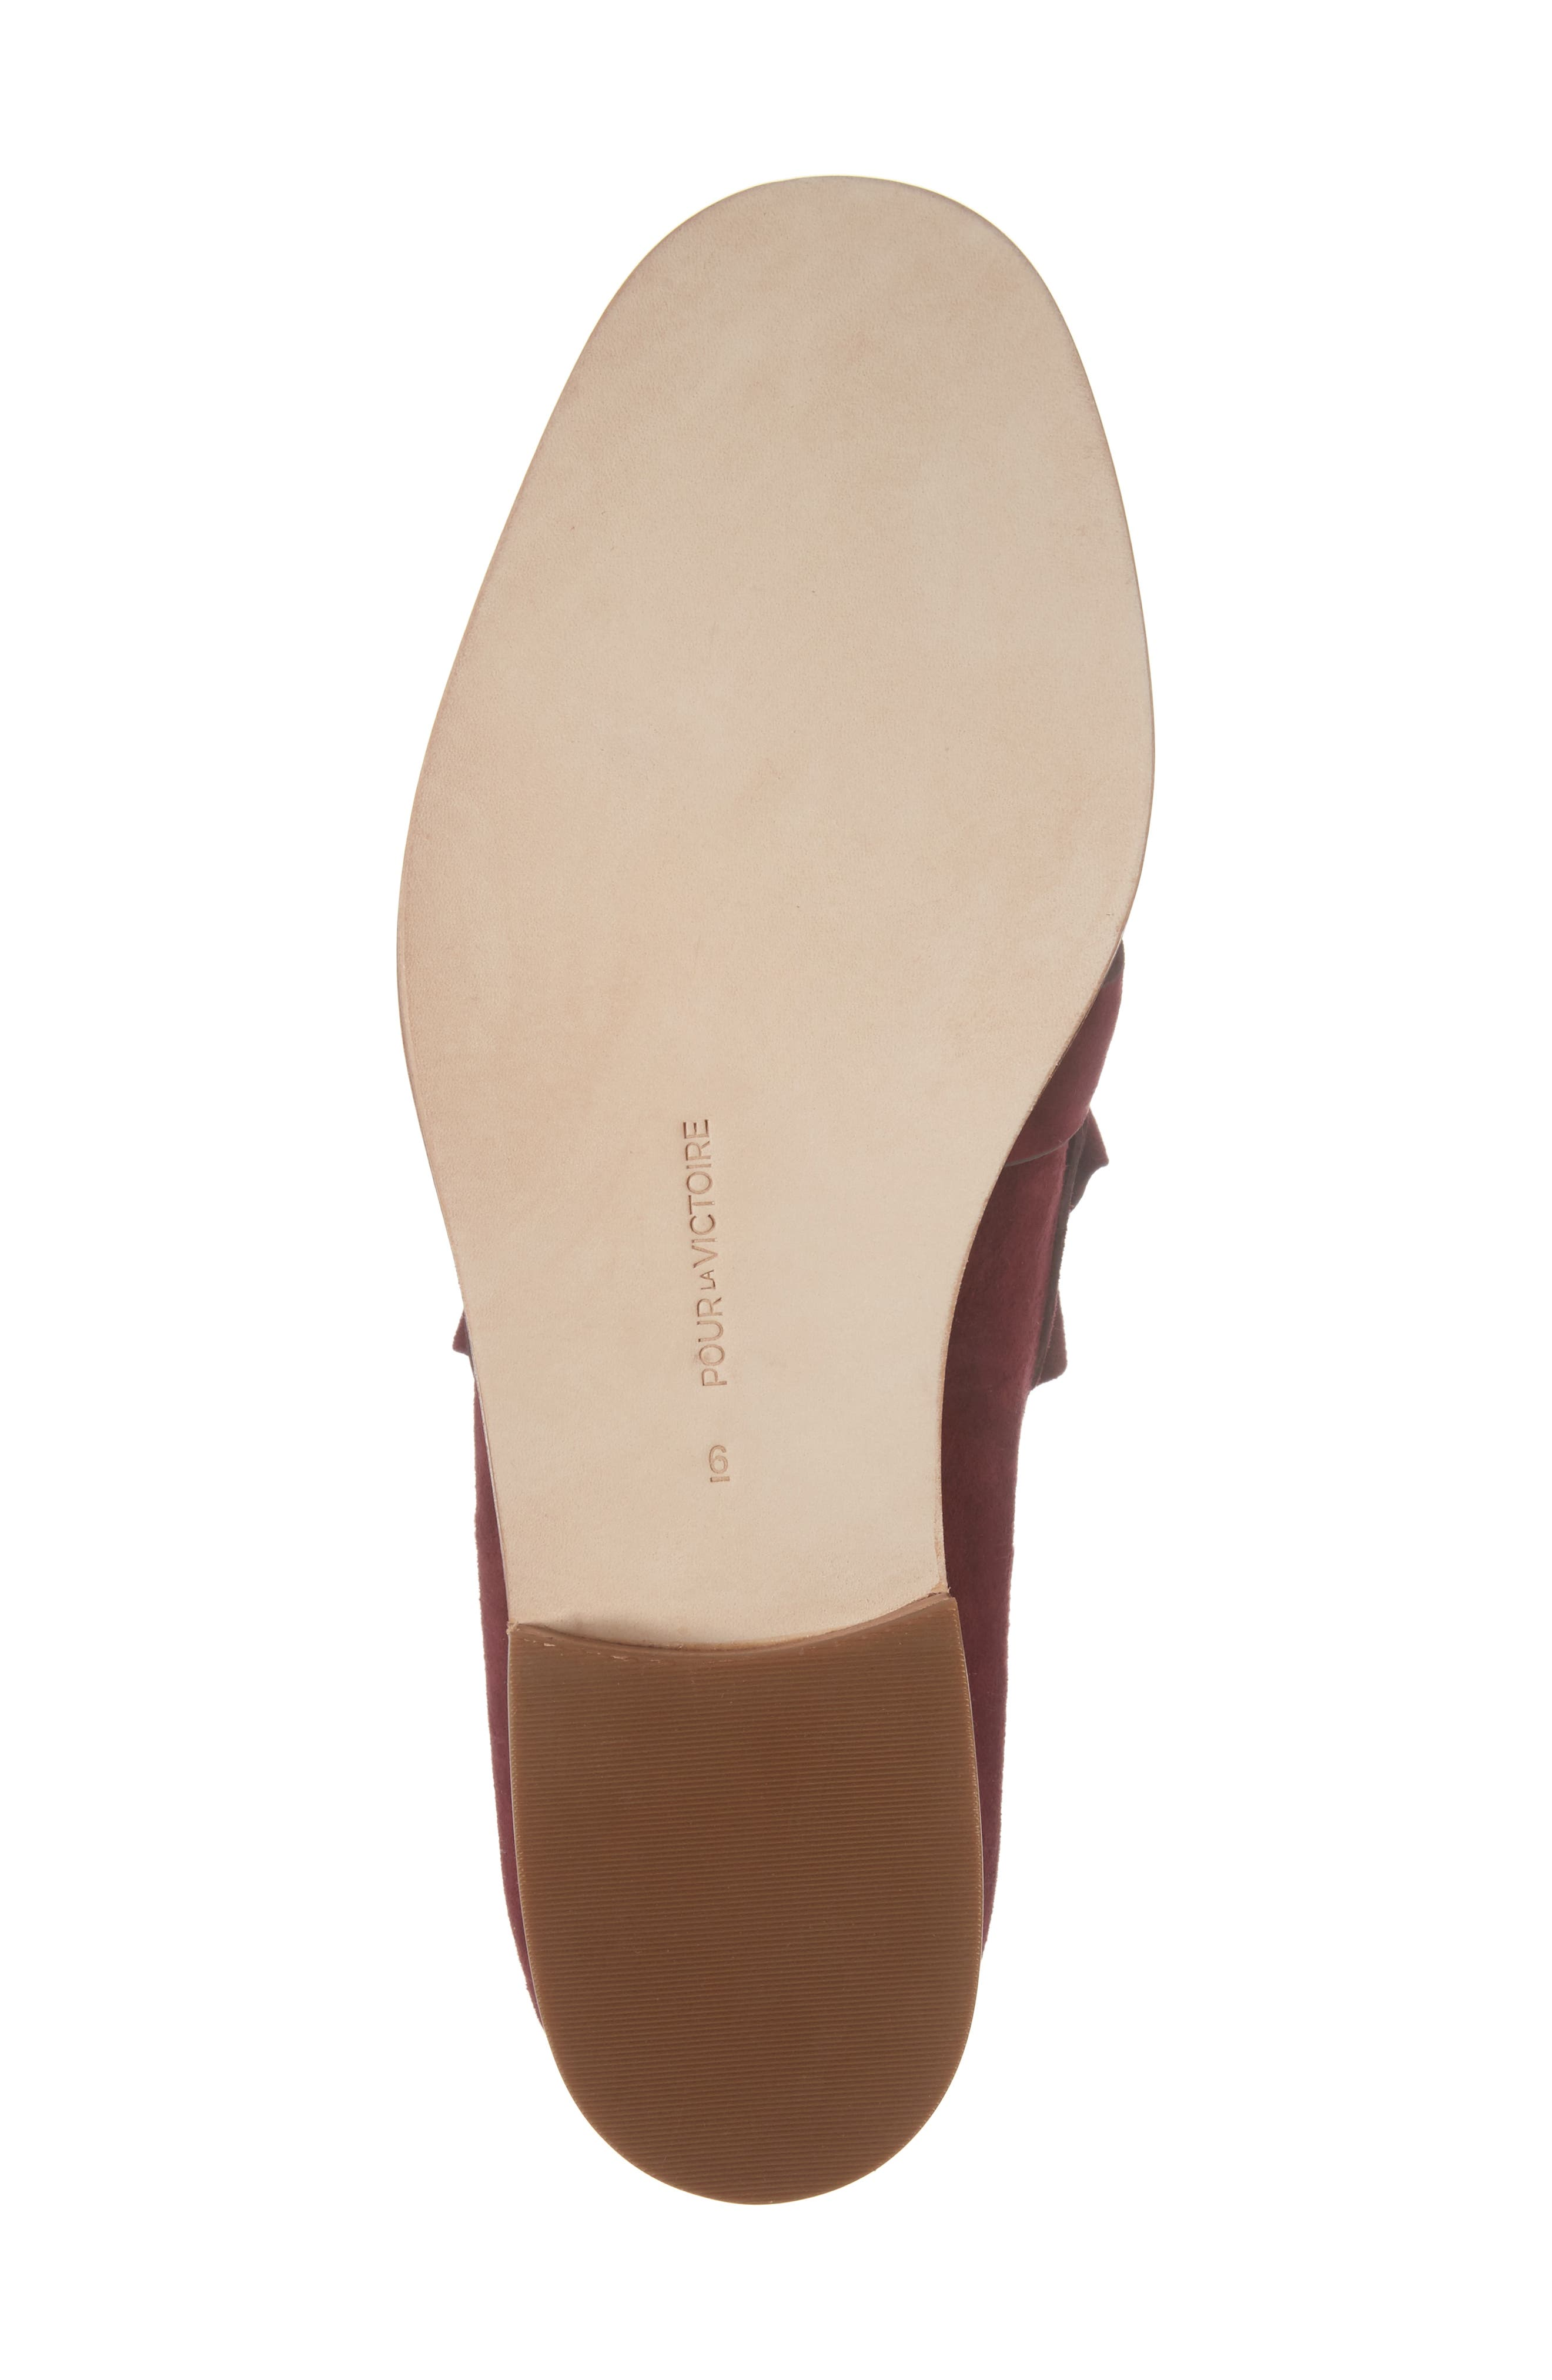 Tenley Ruffled Loafer,                             Alternate thumbnail 6, color,                             Merlot Suede